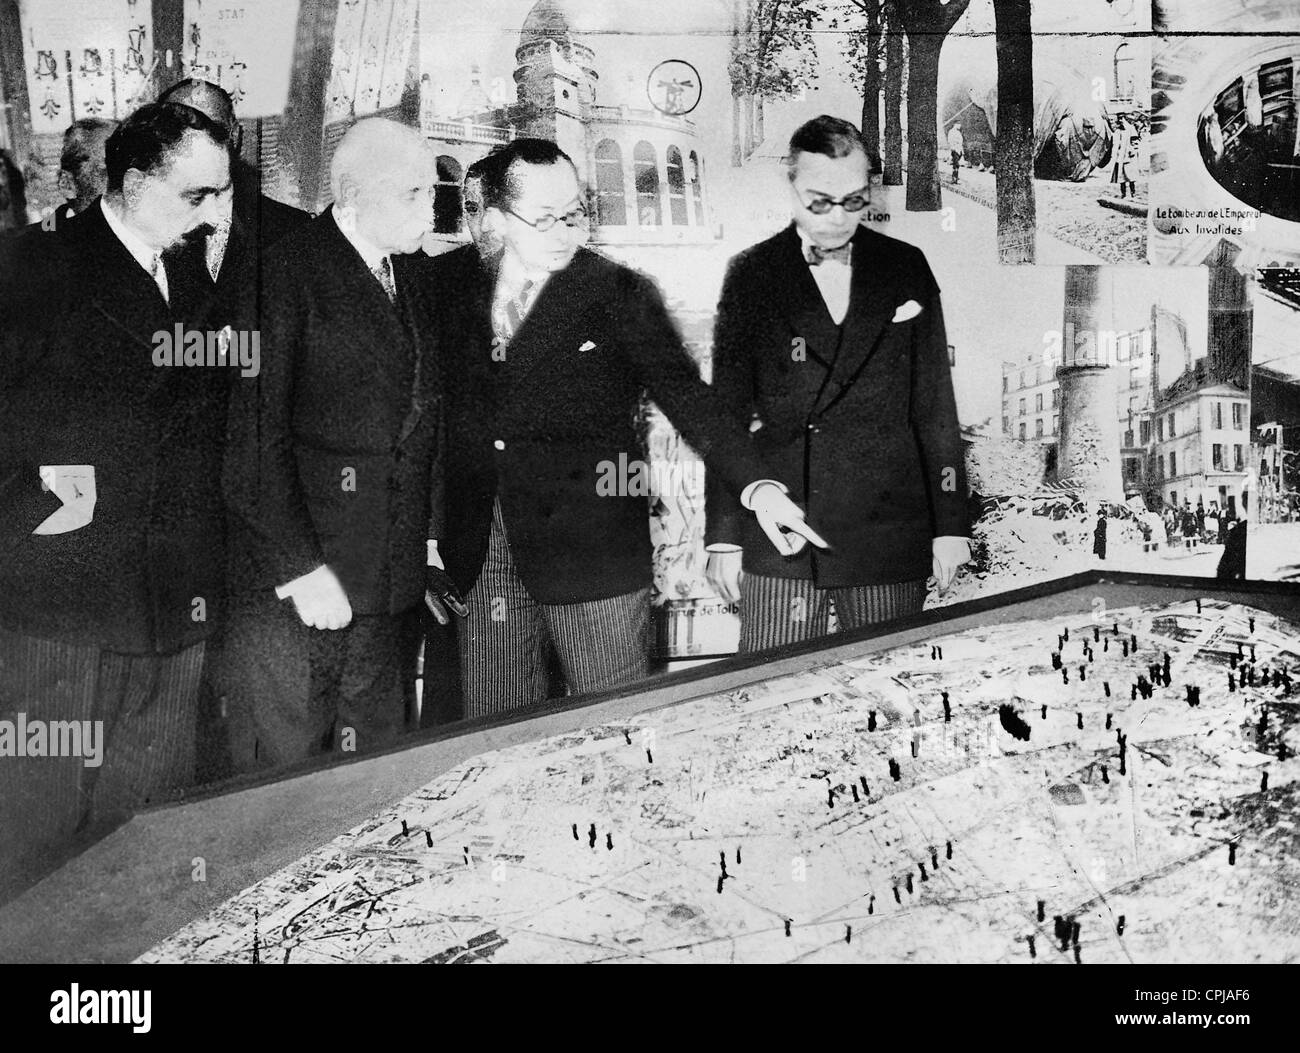 Marshal Henri Philippe Petain at the Parisian Exhibition of War, 1935 - Stock Image